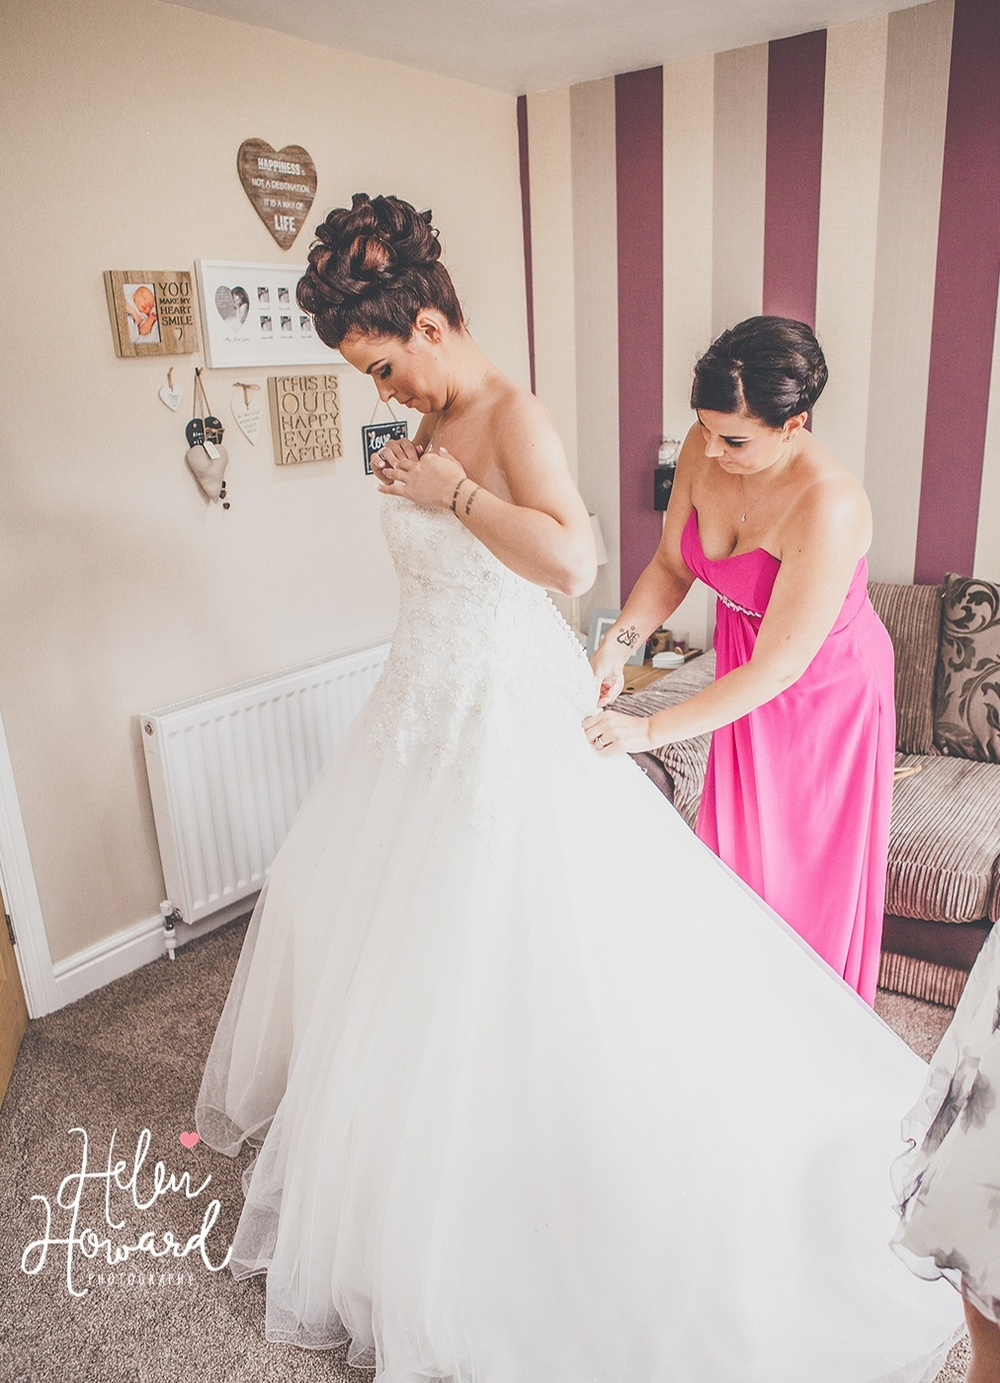 image of a bride putting on her wedding dress